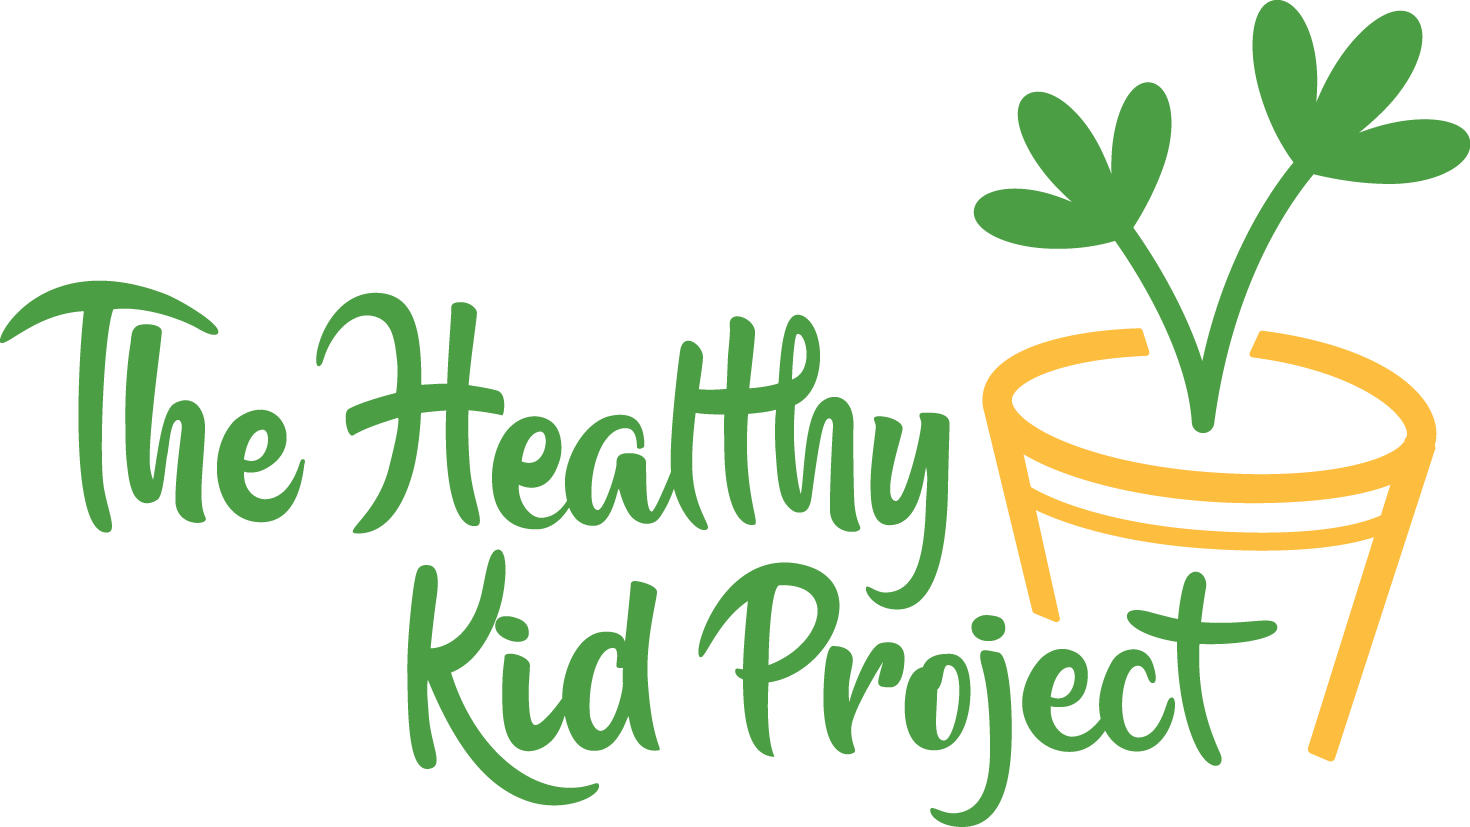 The Healthy Kid Project